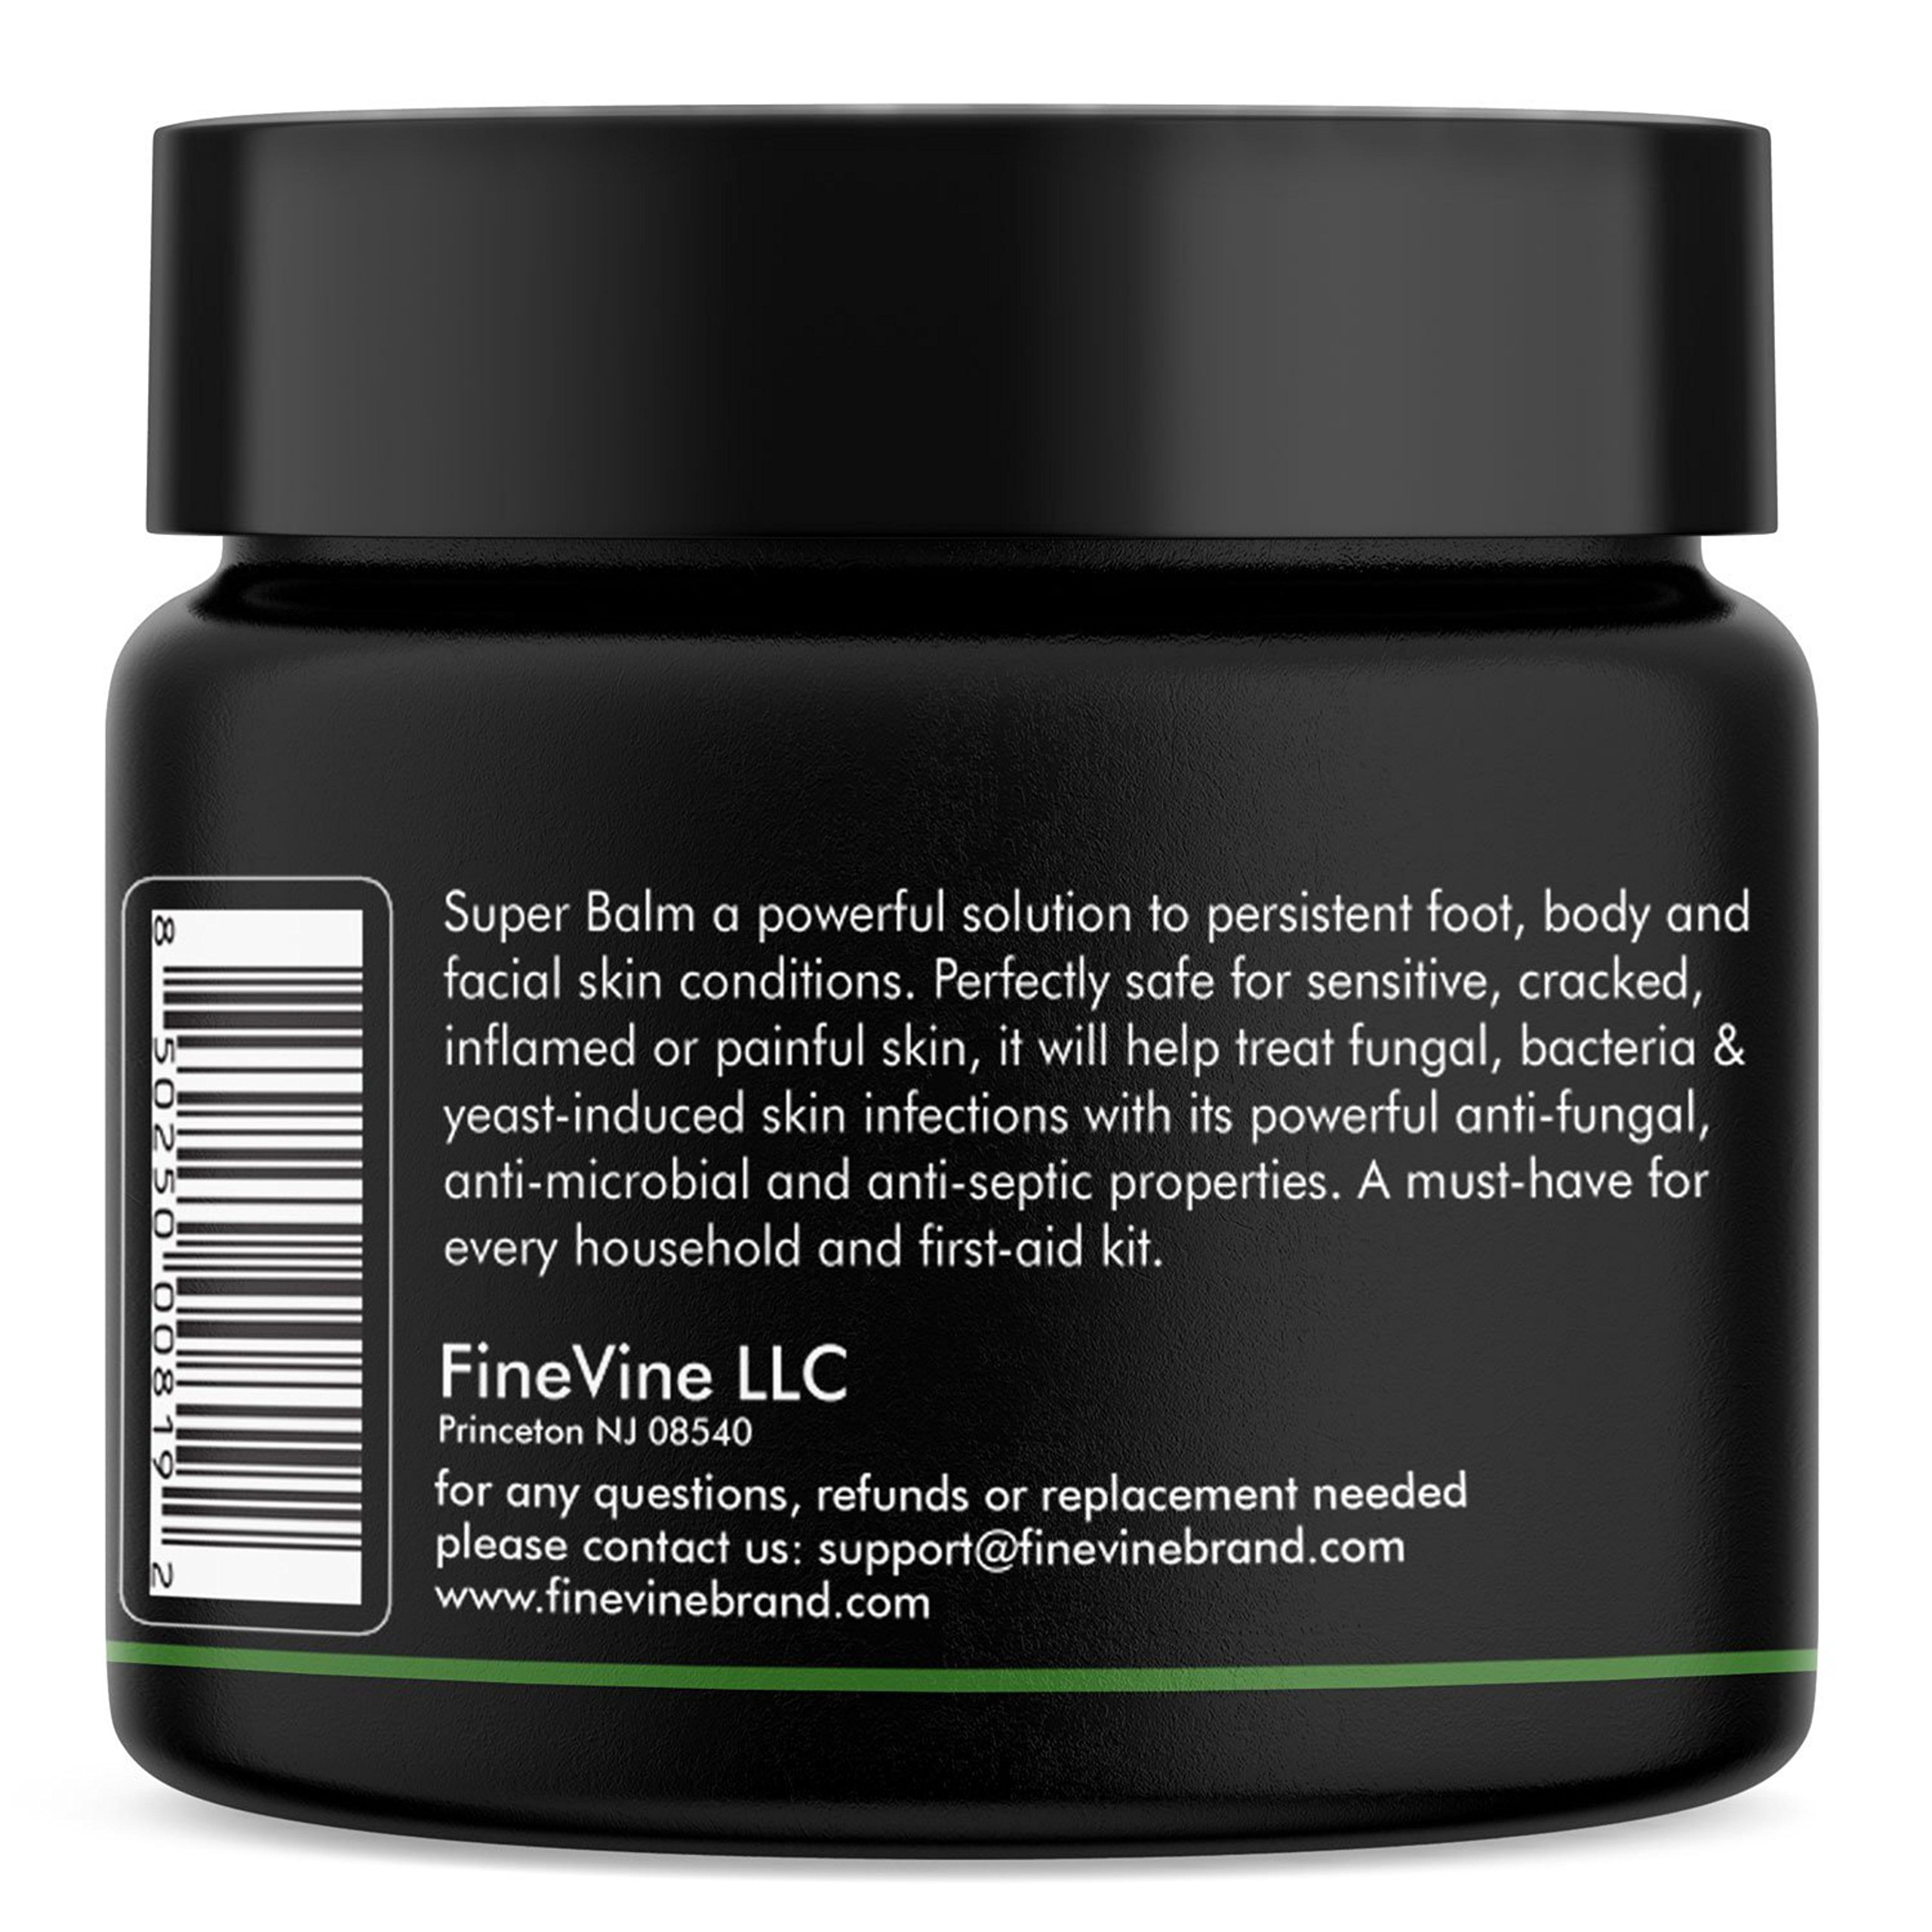 Antifungal Balm - Made in USA - Helps Treat Eczema, Ringworm, Jock Itch, Athletes Foot and Nail Fungal Infections - Best Natural Ointment to Soothes Itchy, Scaly or Cracked Skin. by FineVine (Image #1)